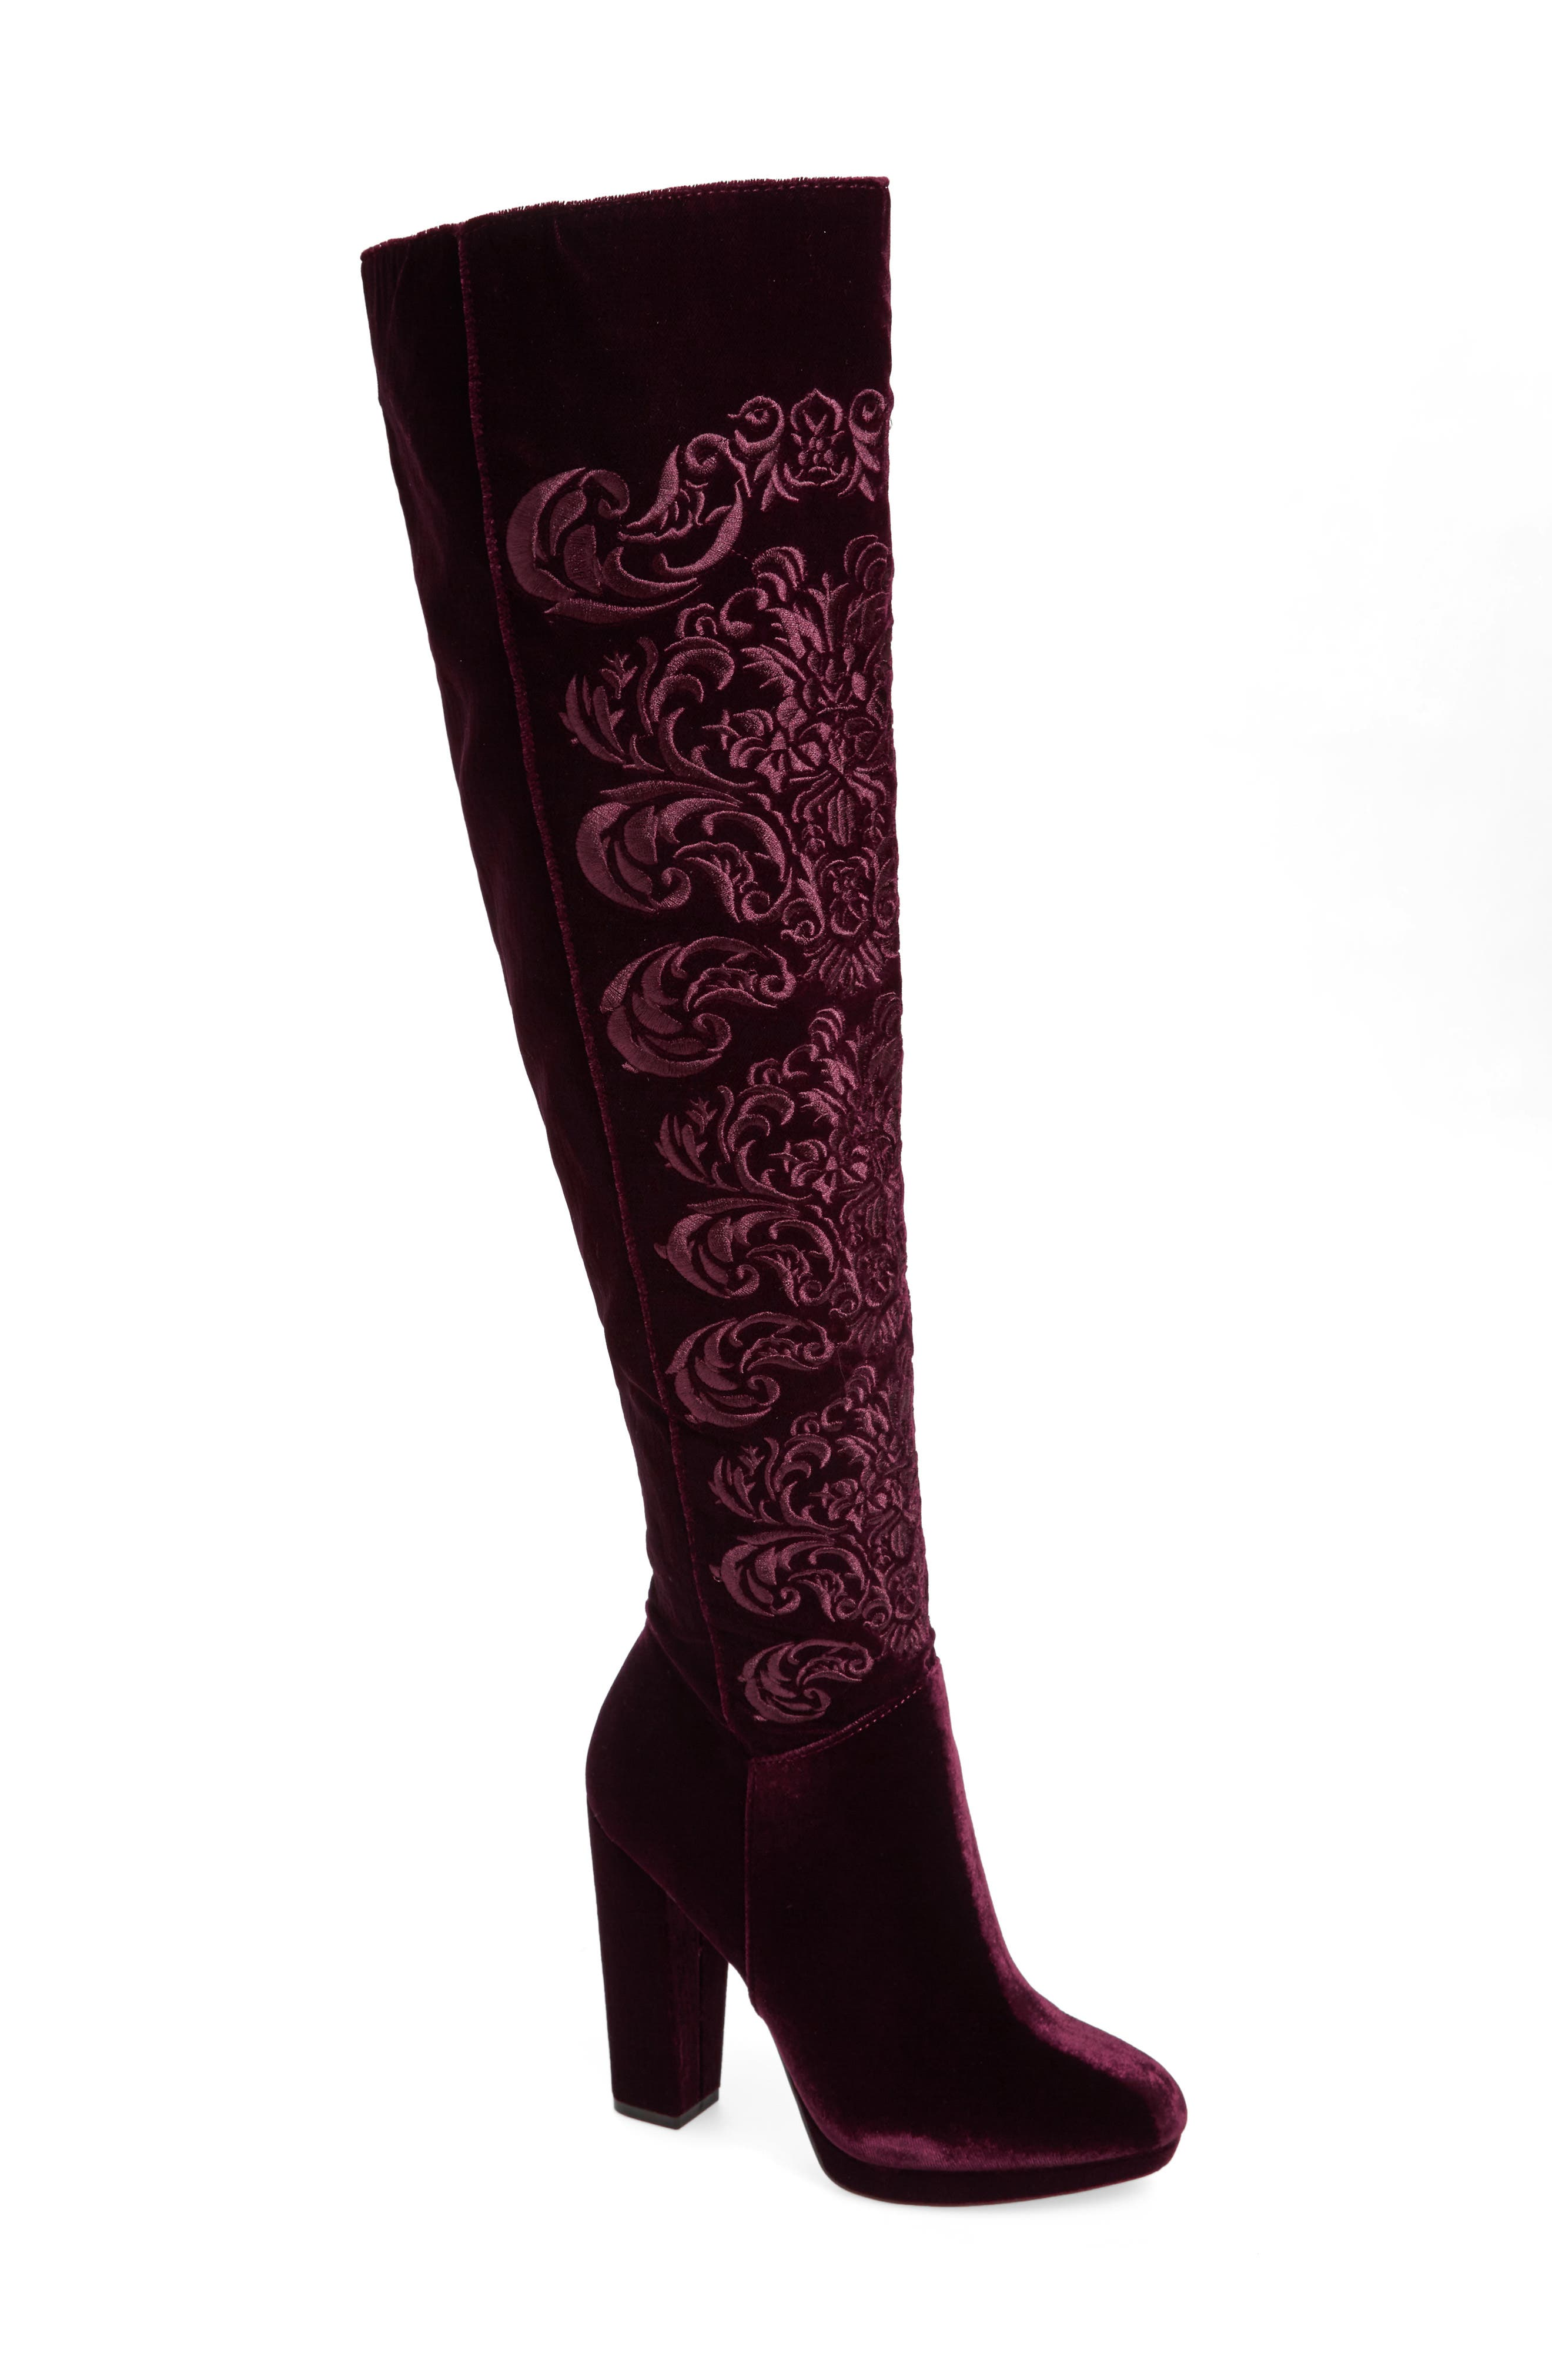 Main Image - Jessica Simpson Grizella Embroidered Over the Knee Boot (Women)